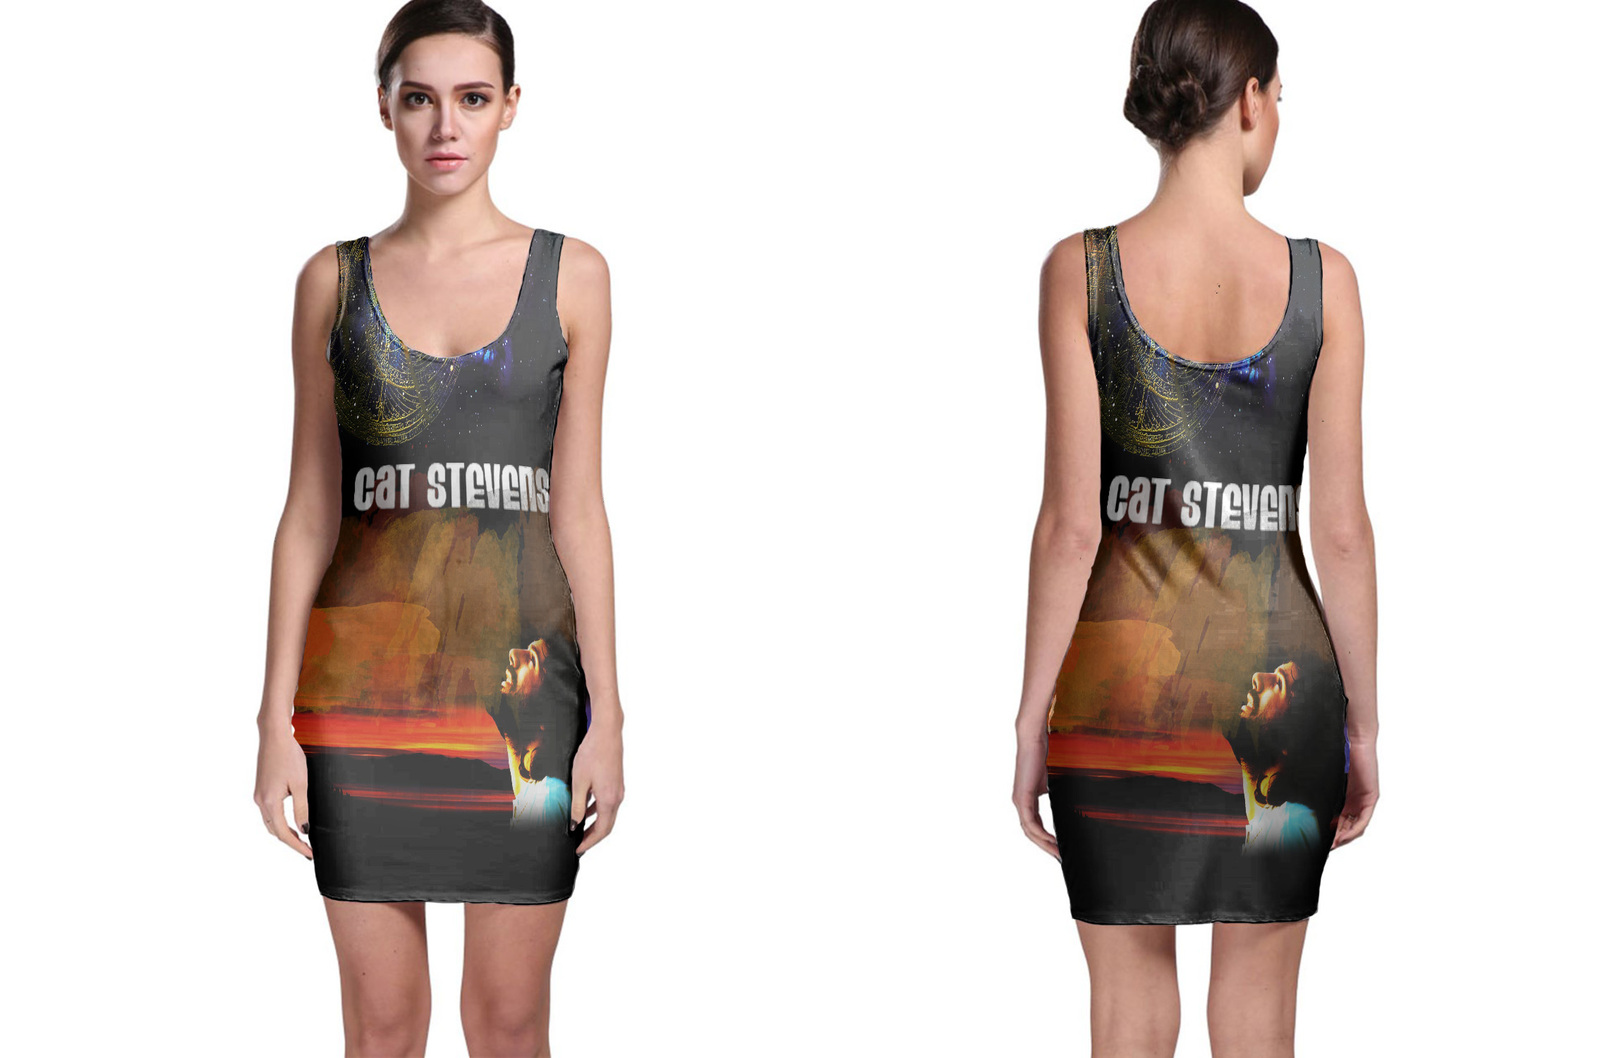 Cat stevens bodycon dress